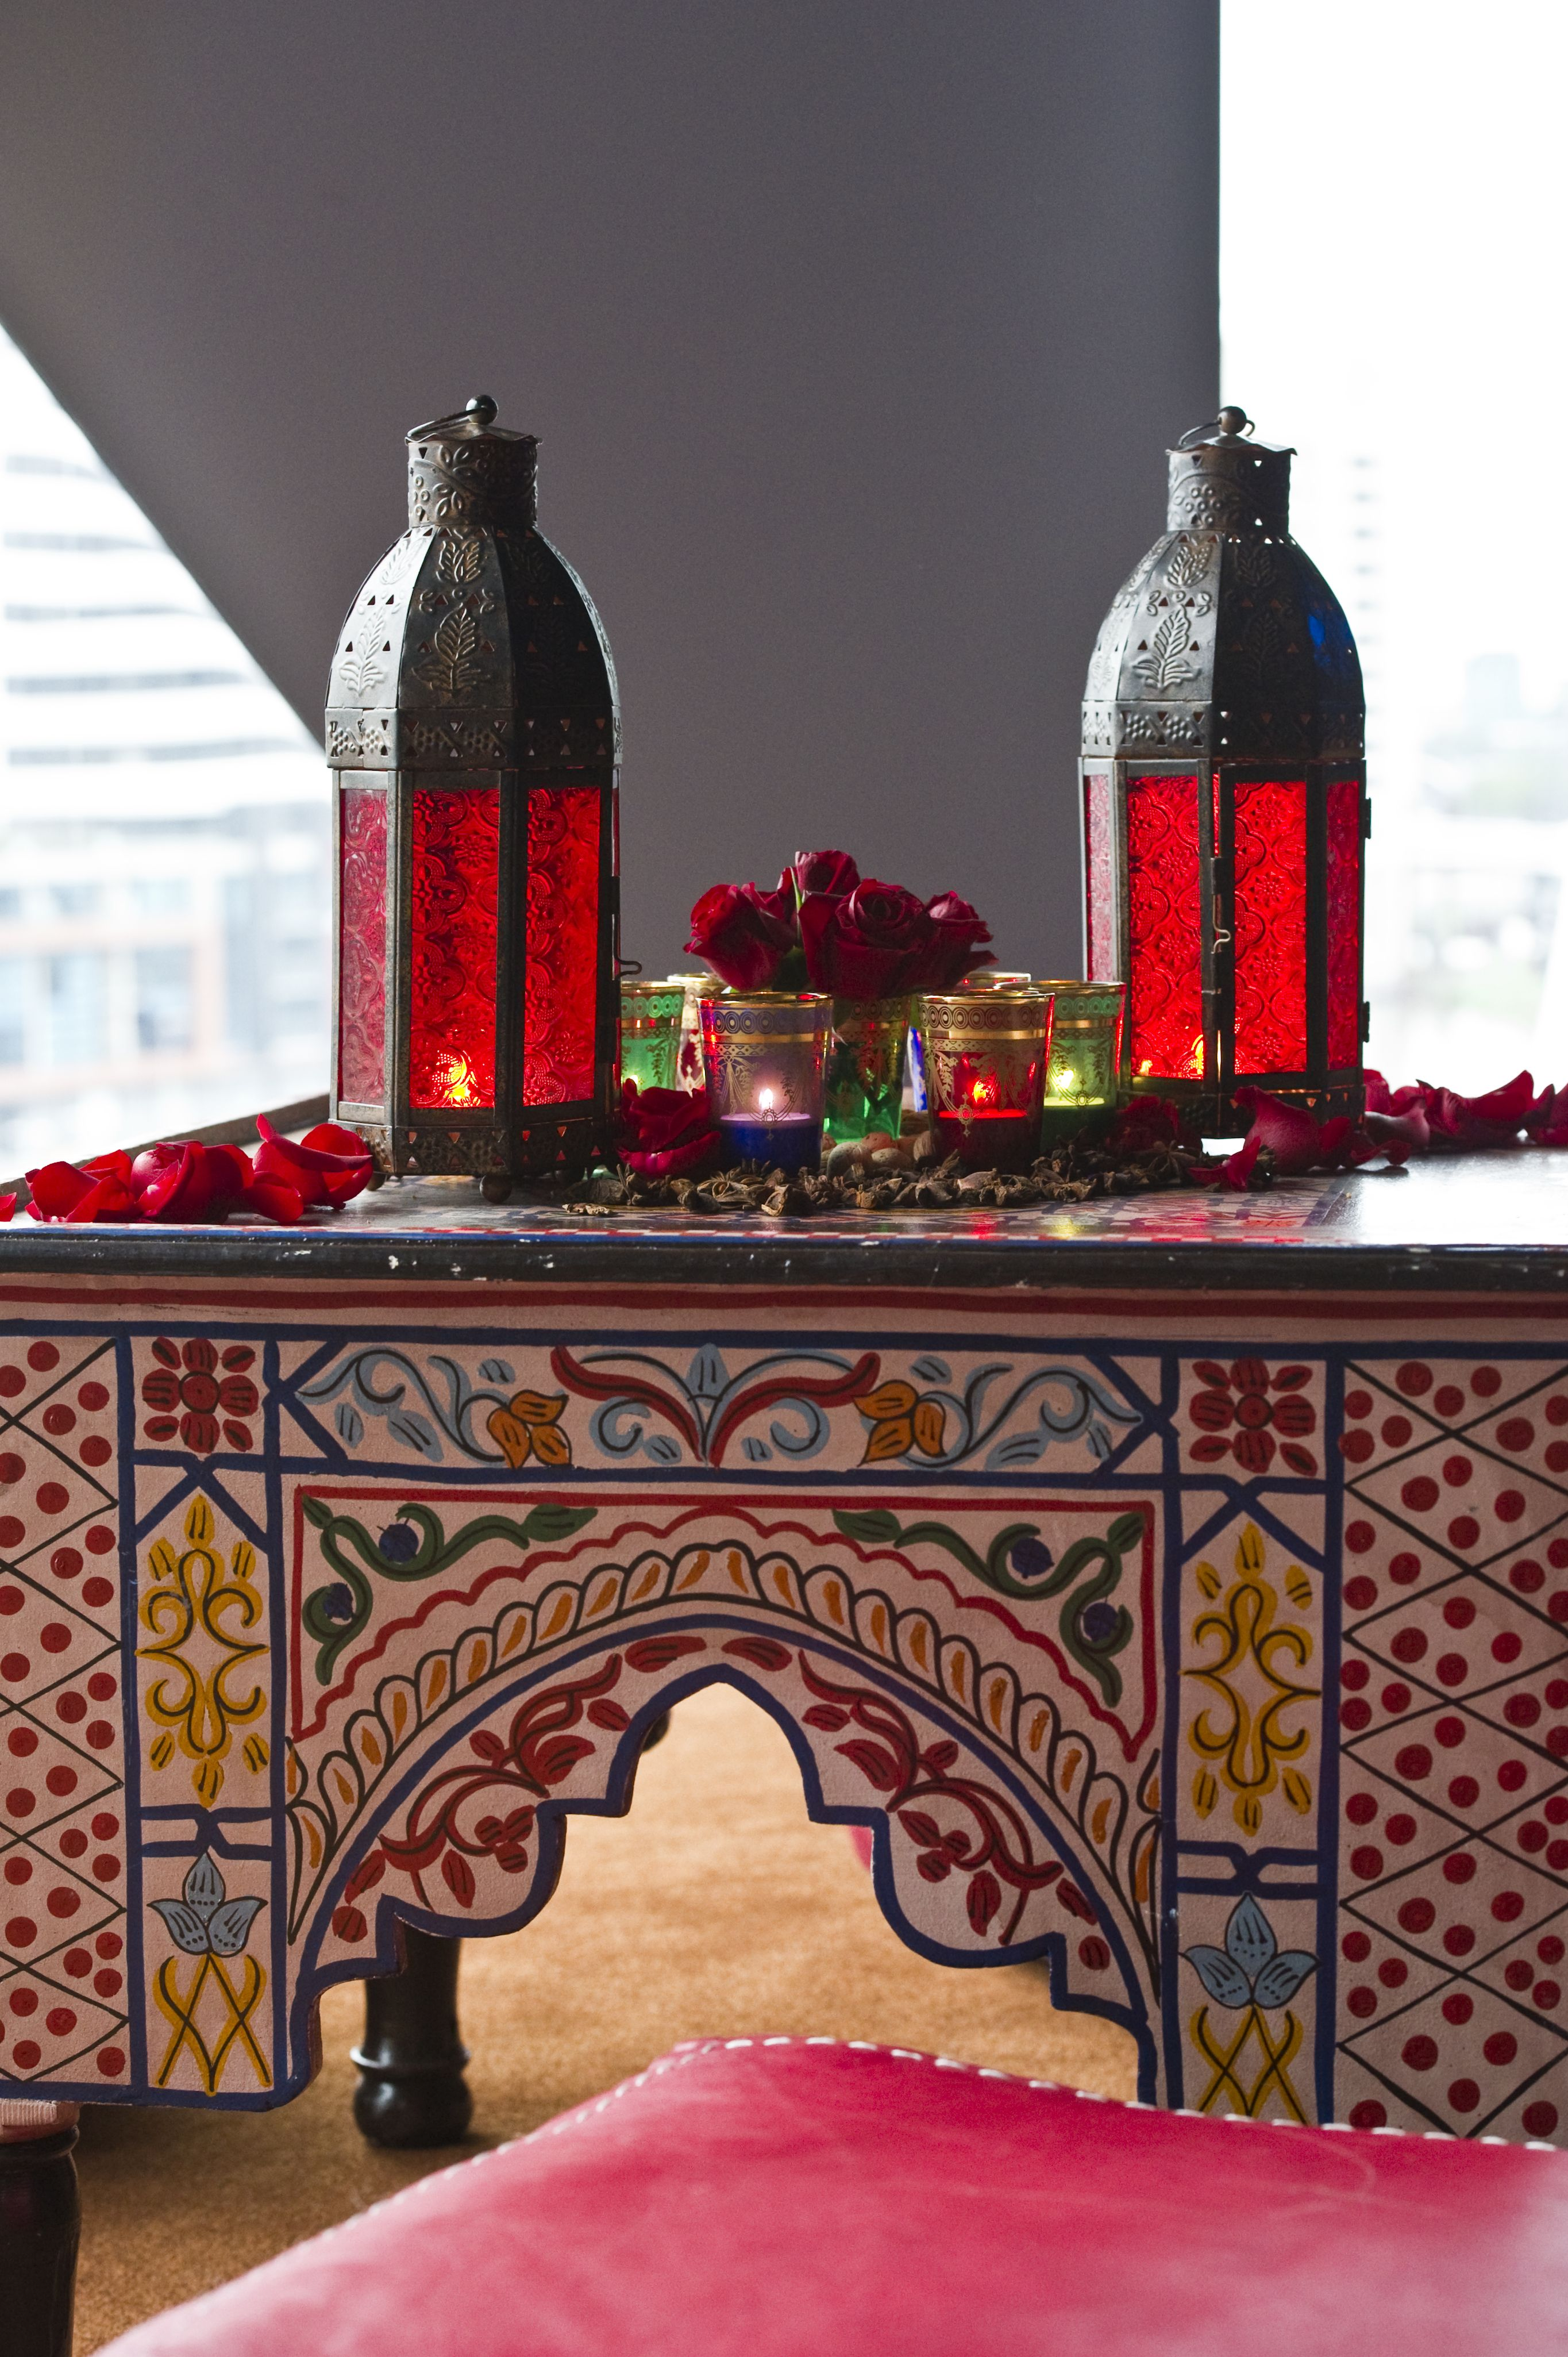 Moraccan Table The House Of Beccaria Deco Marocaine Decoration Marocaine Et Decoration Orientale